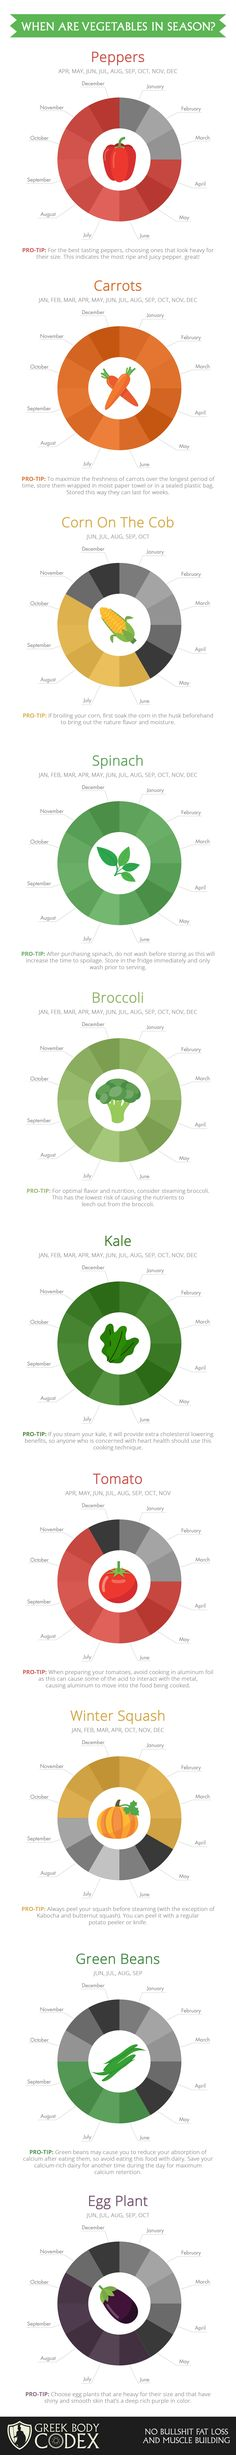 When Are Vegetables in Season? by greekbodycodex #Infographic #Seasonal_Vegetables